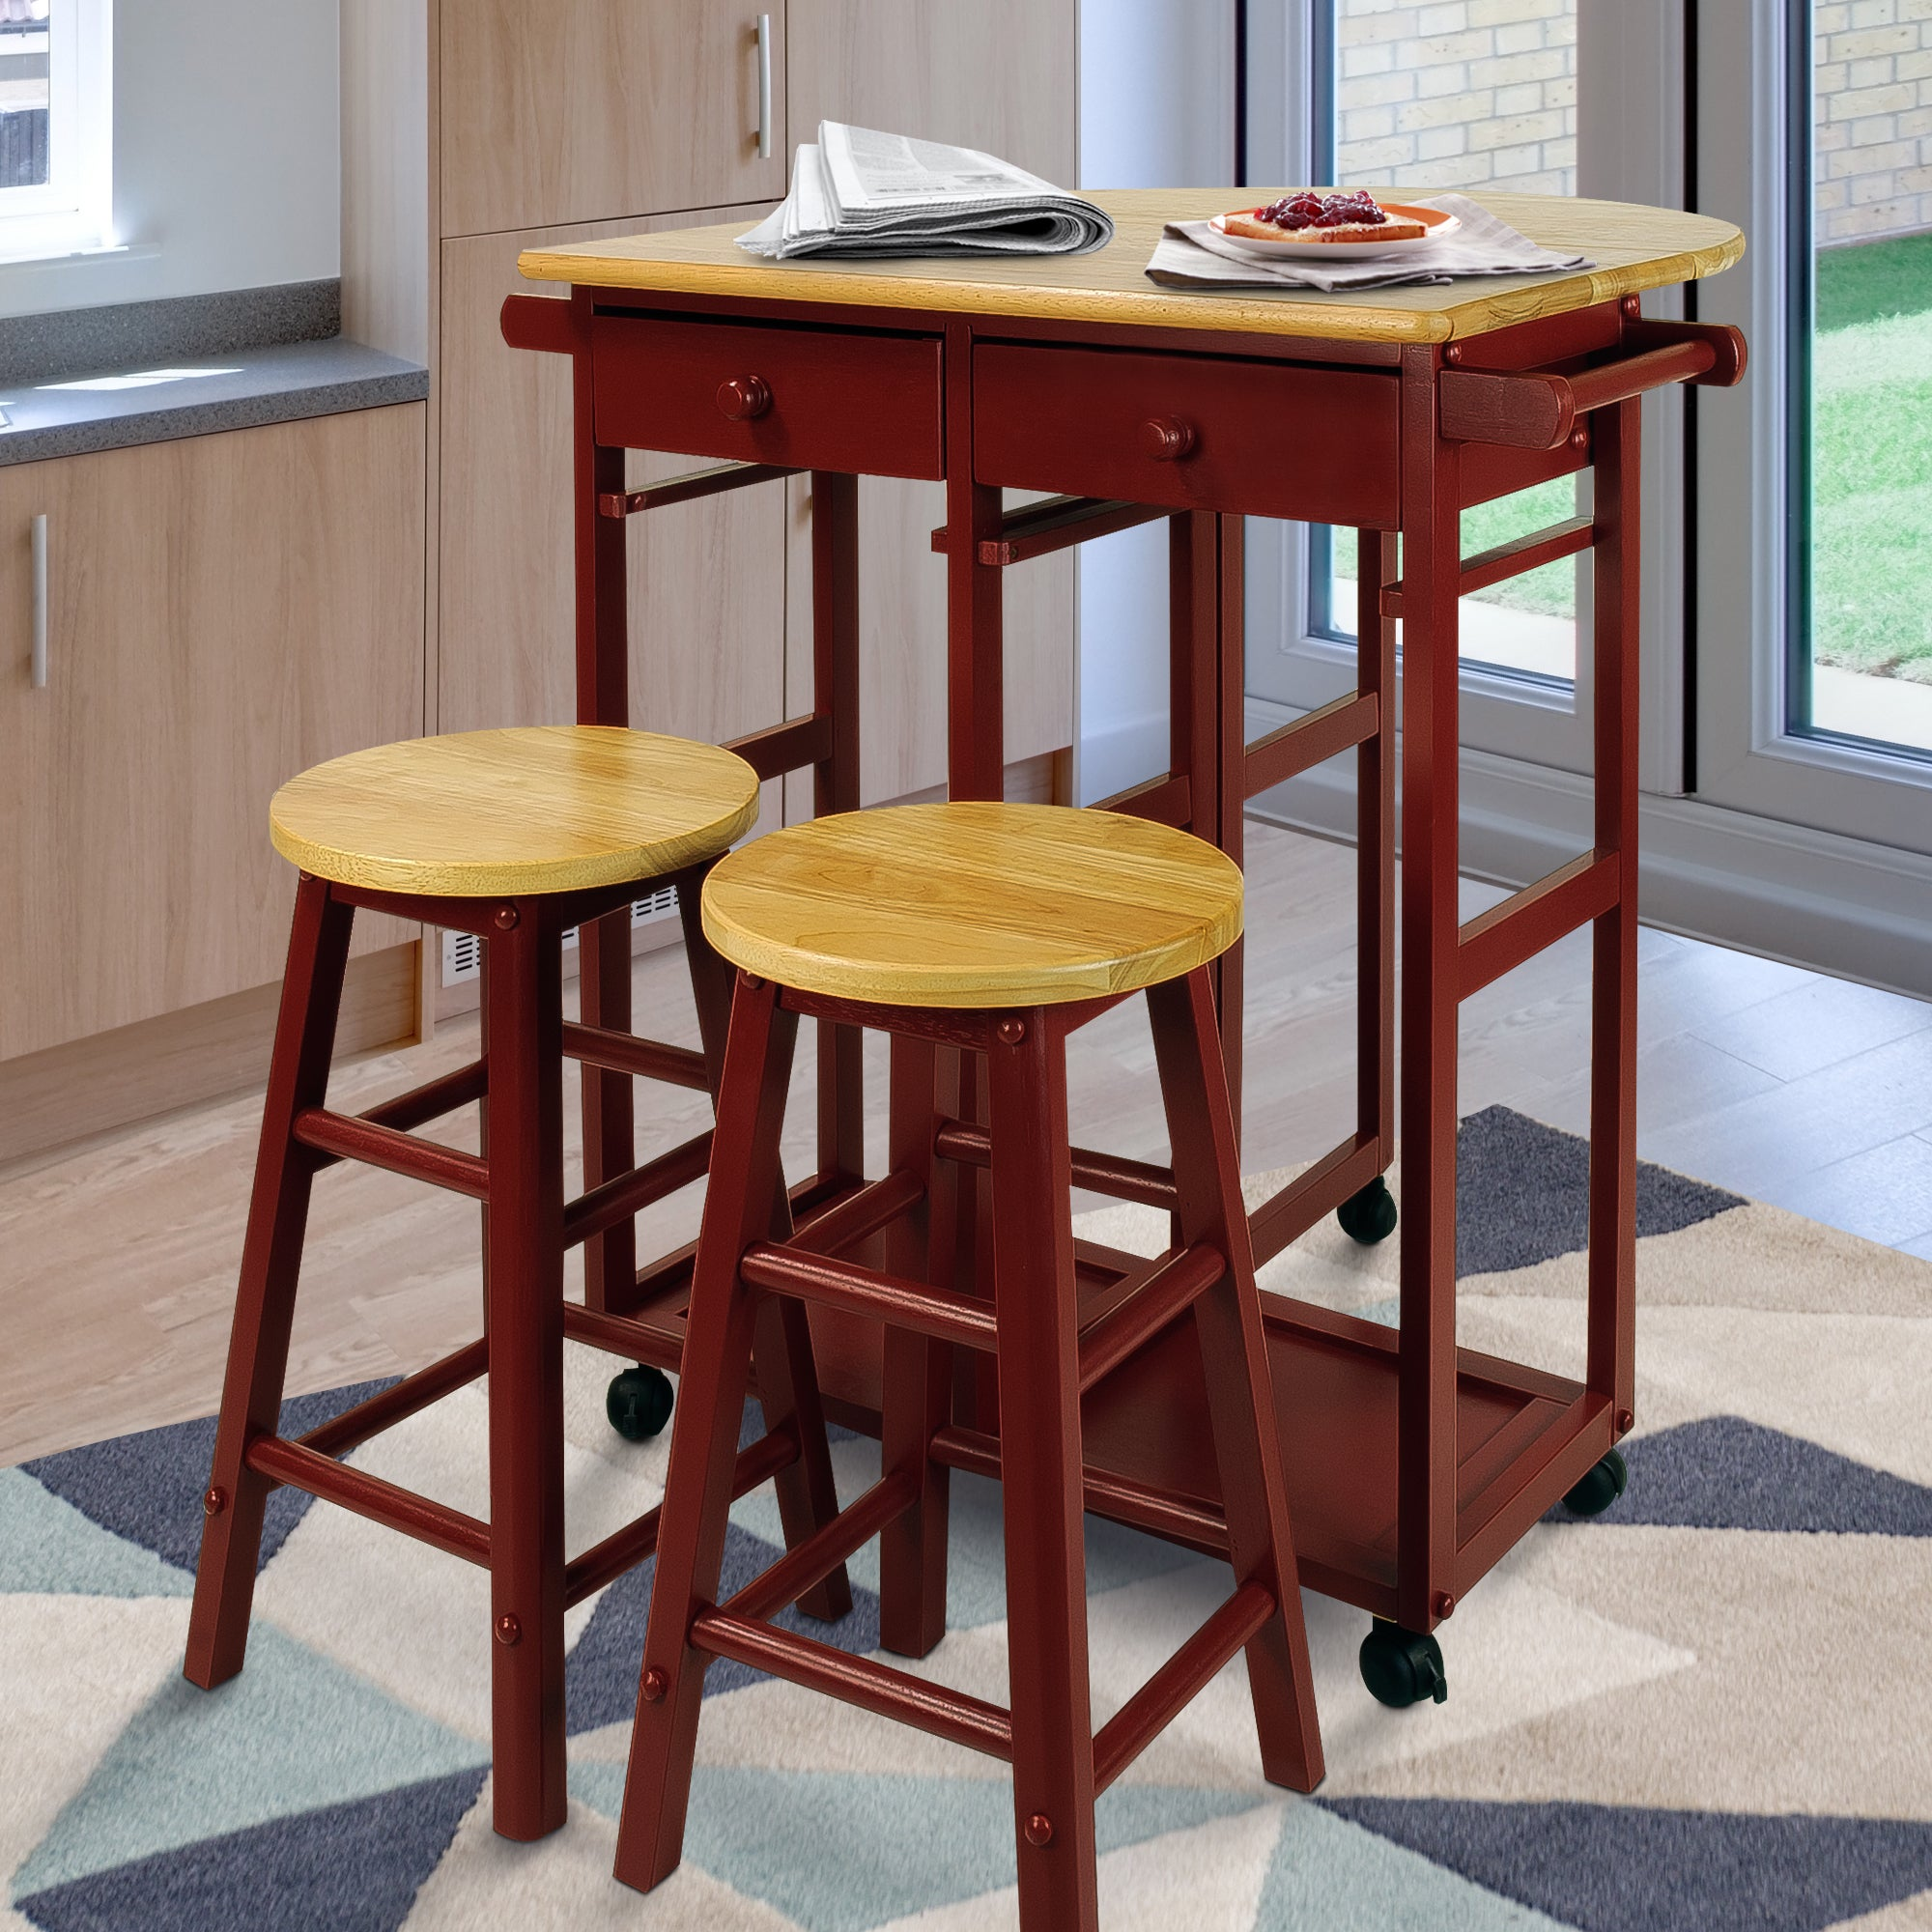 Apartment Kitchen Table And Chairs: Drop Leaf Table Kitchen Breakfast Cart Dining Room Chairs